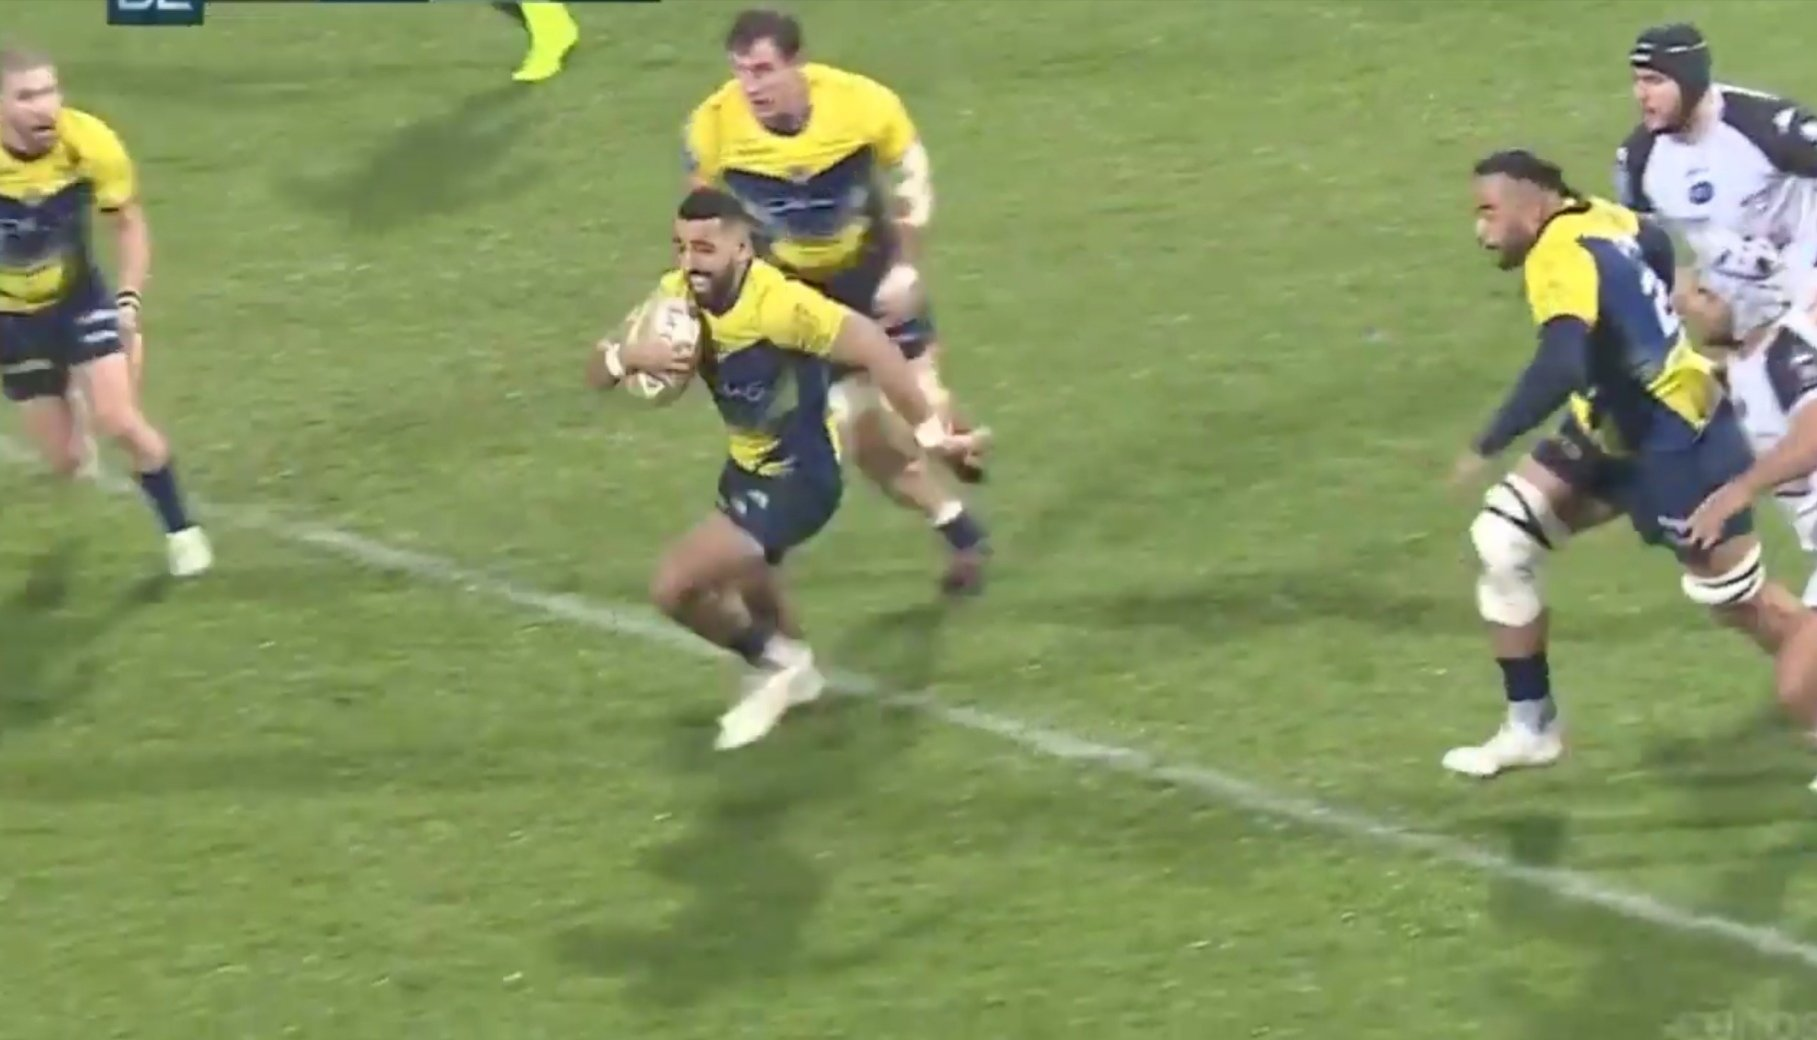 FOOTAGE: The English 10 with a huge boot carving up the ProD2